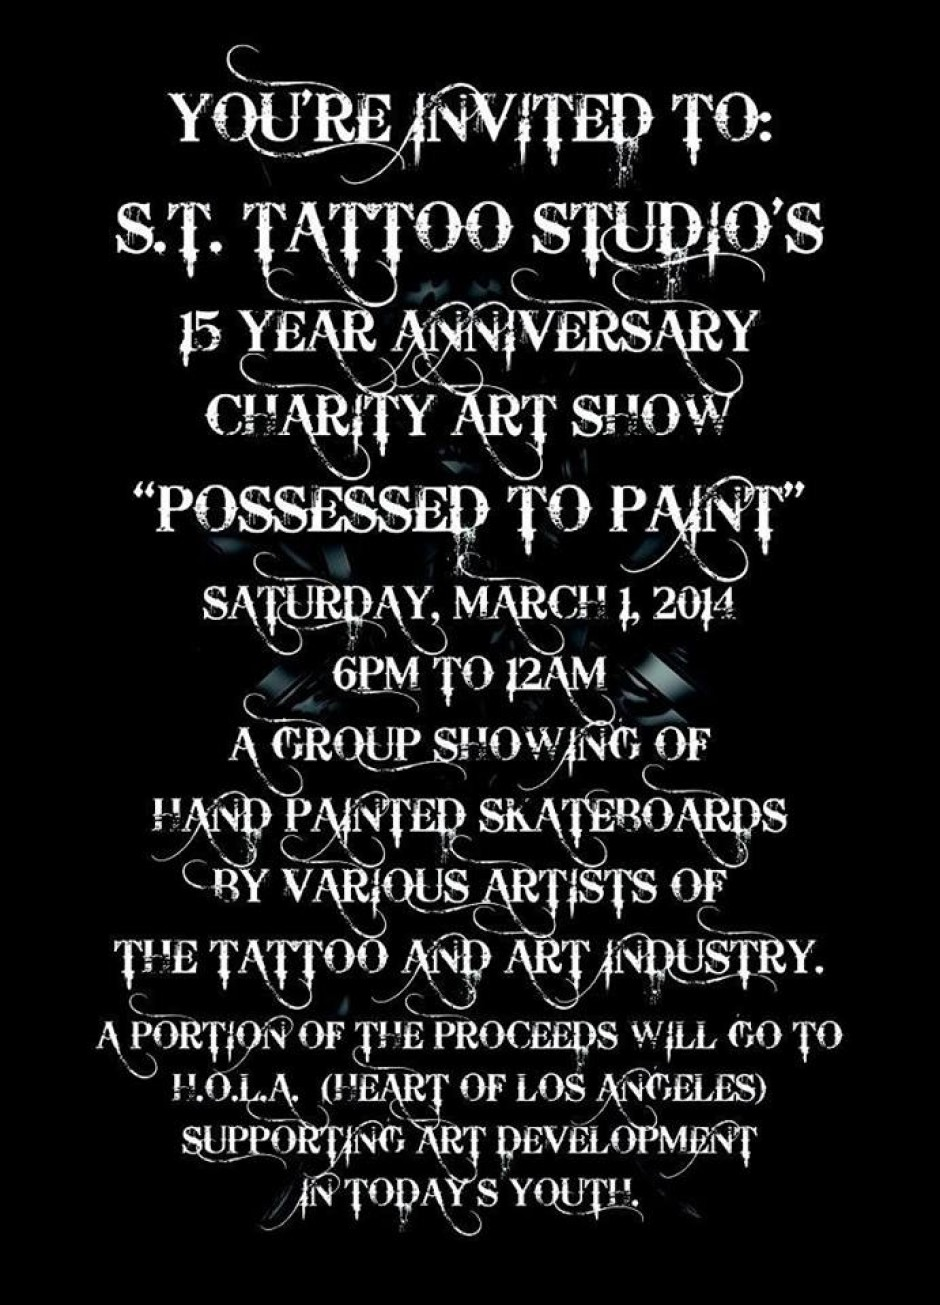 S.T. Tattoo Studios 15 Year Anniversary Charity Art Show